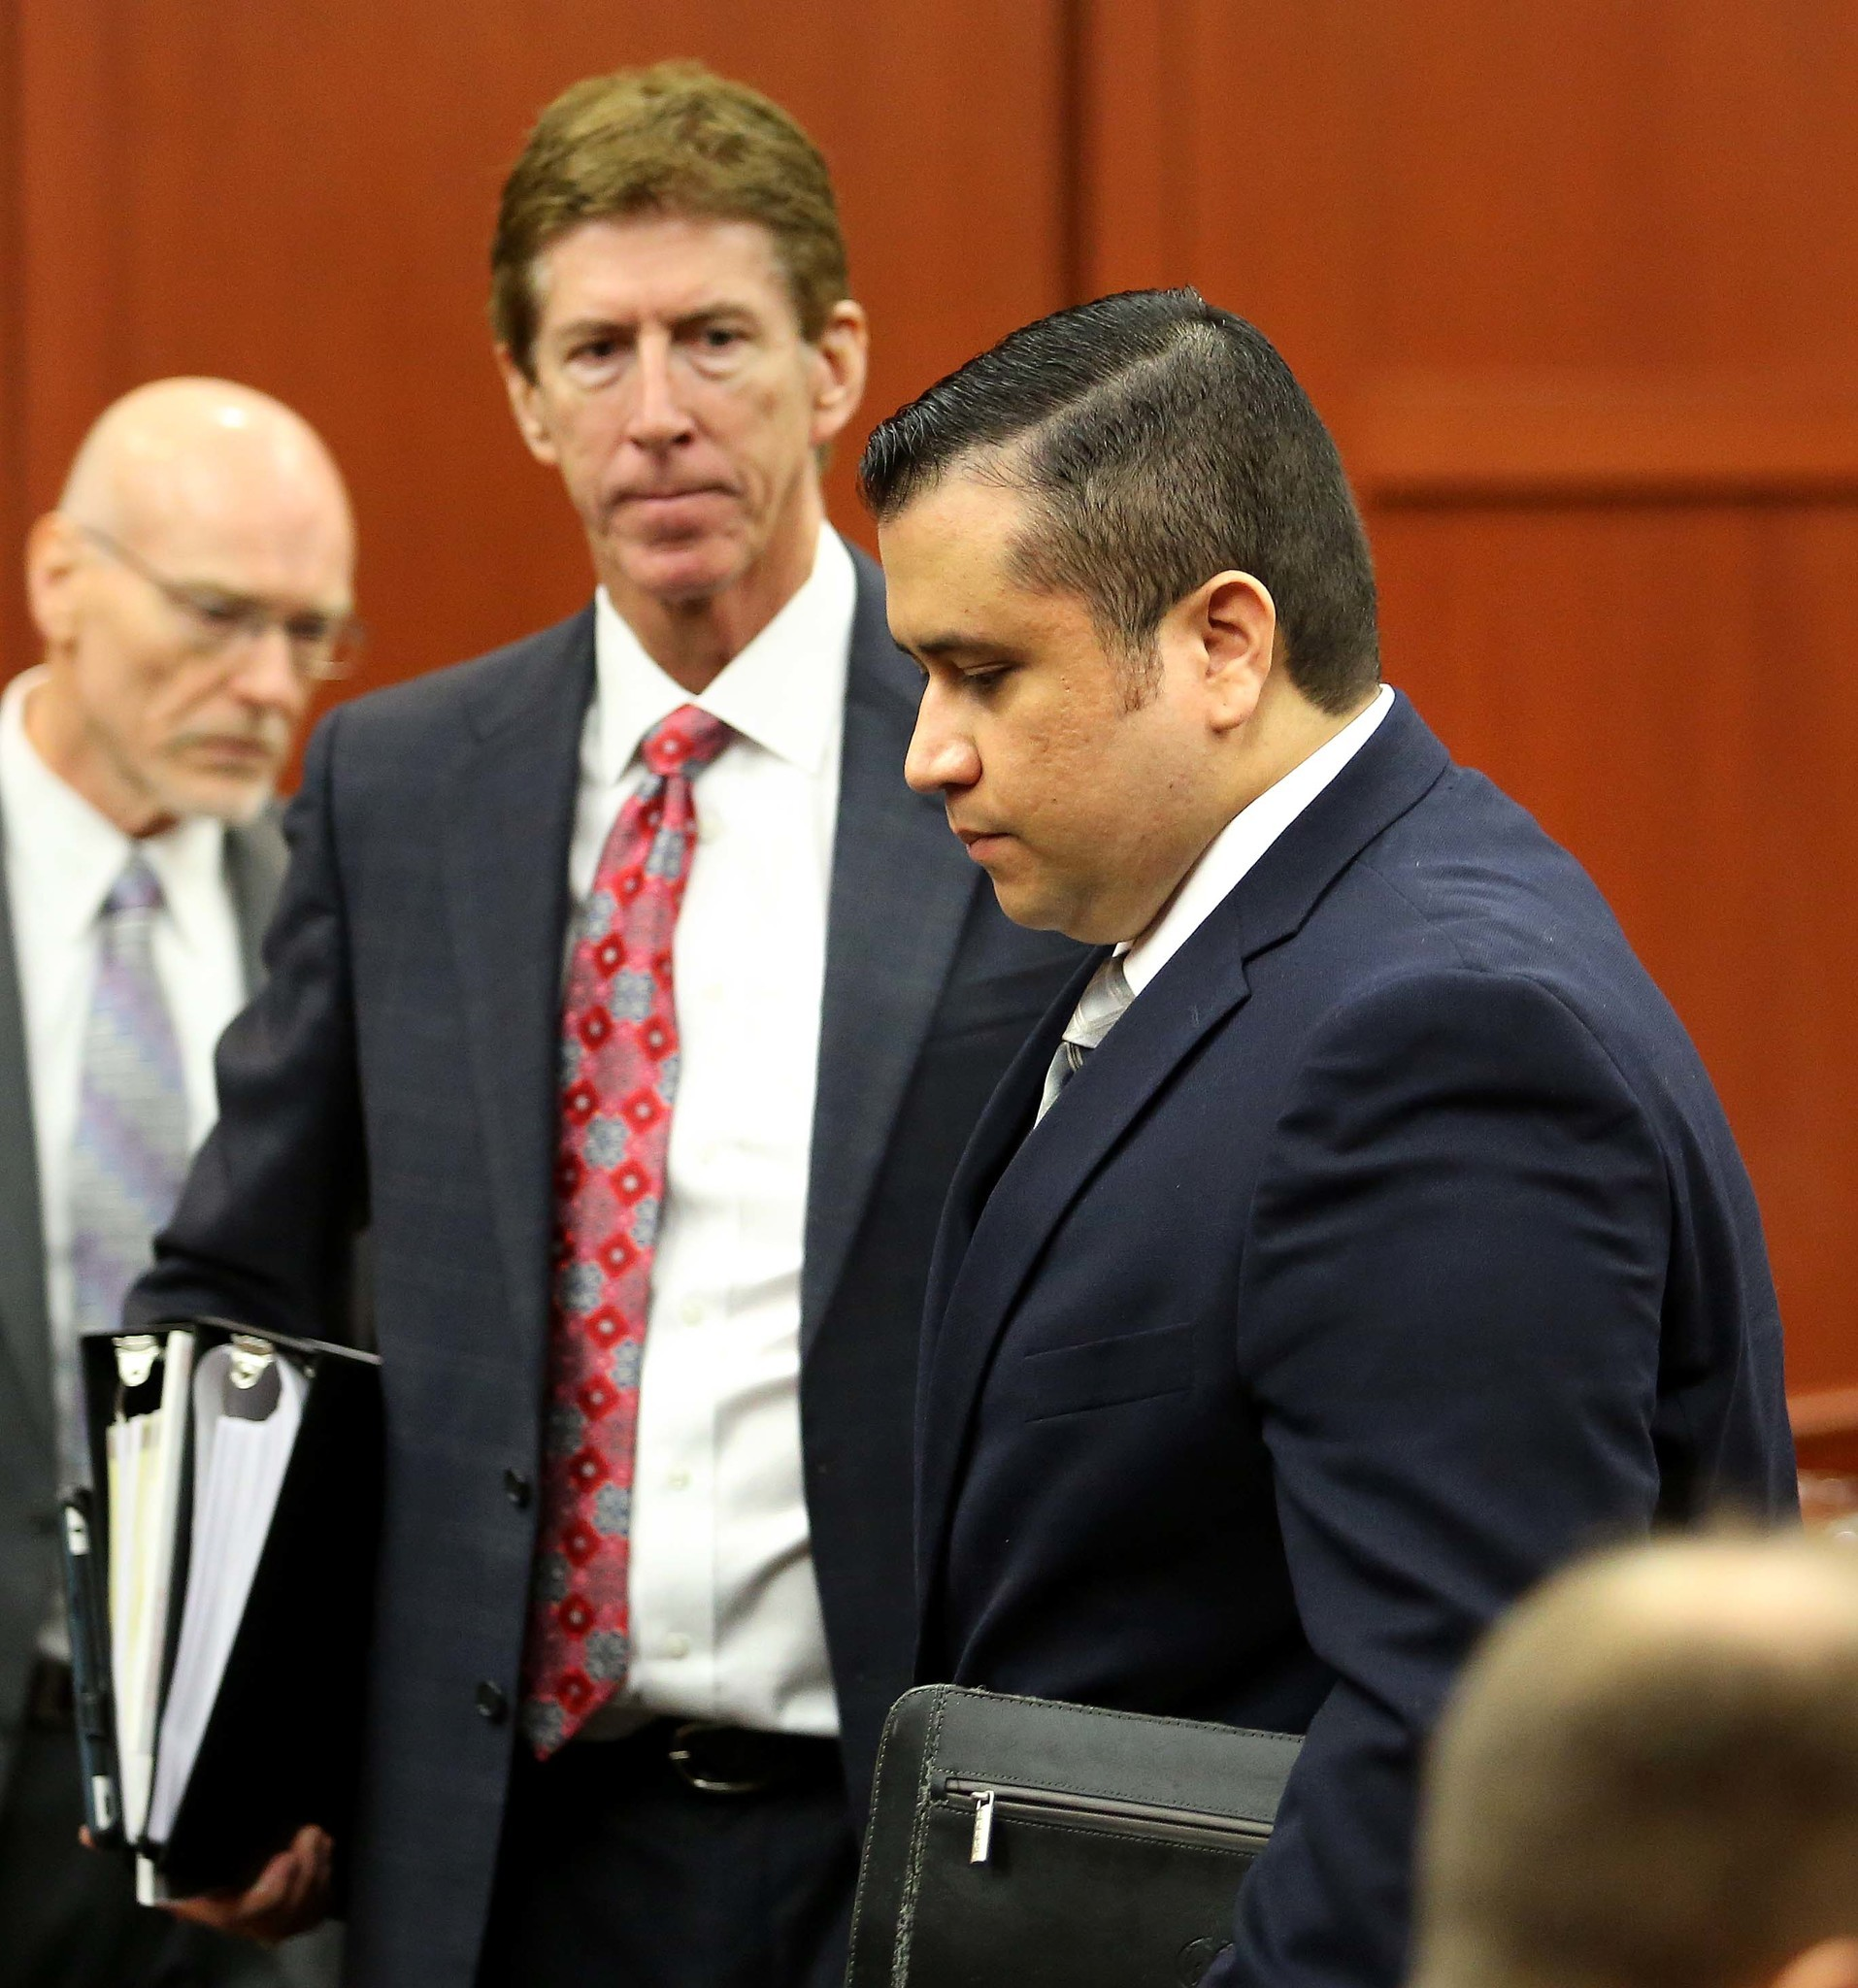 George Zimmerman leaves the courtroom during a recess, with his attorney Mark O'Mara,  in Seminole circuit court on the first day of his trial, in Sanford, Fla., Monday, June 10, 2013.